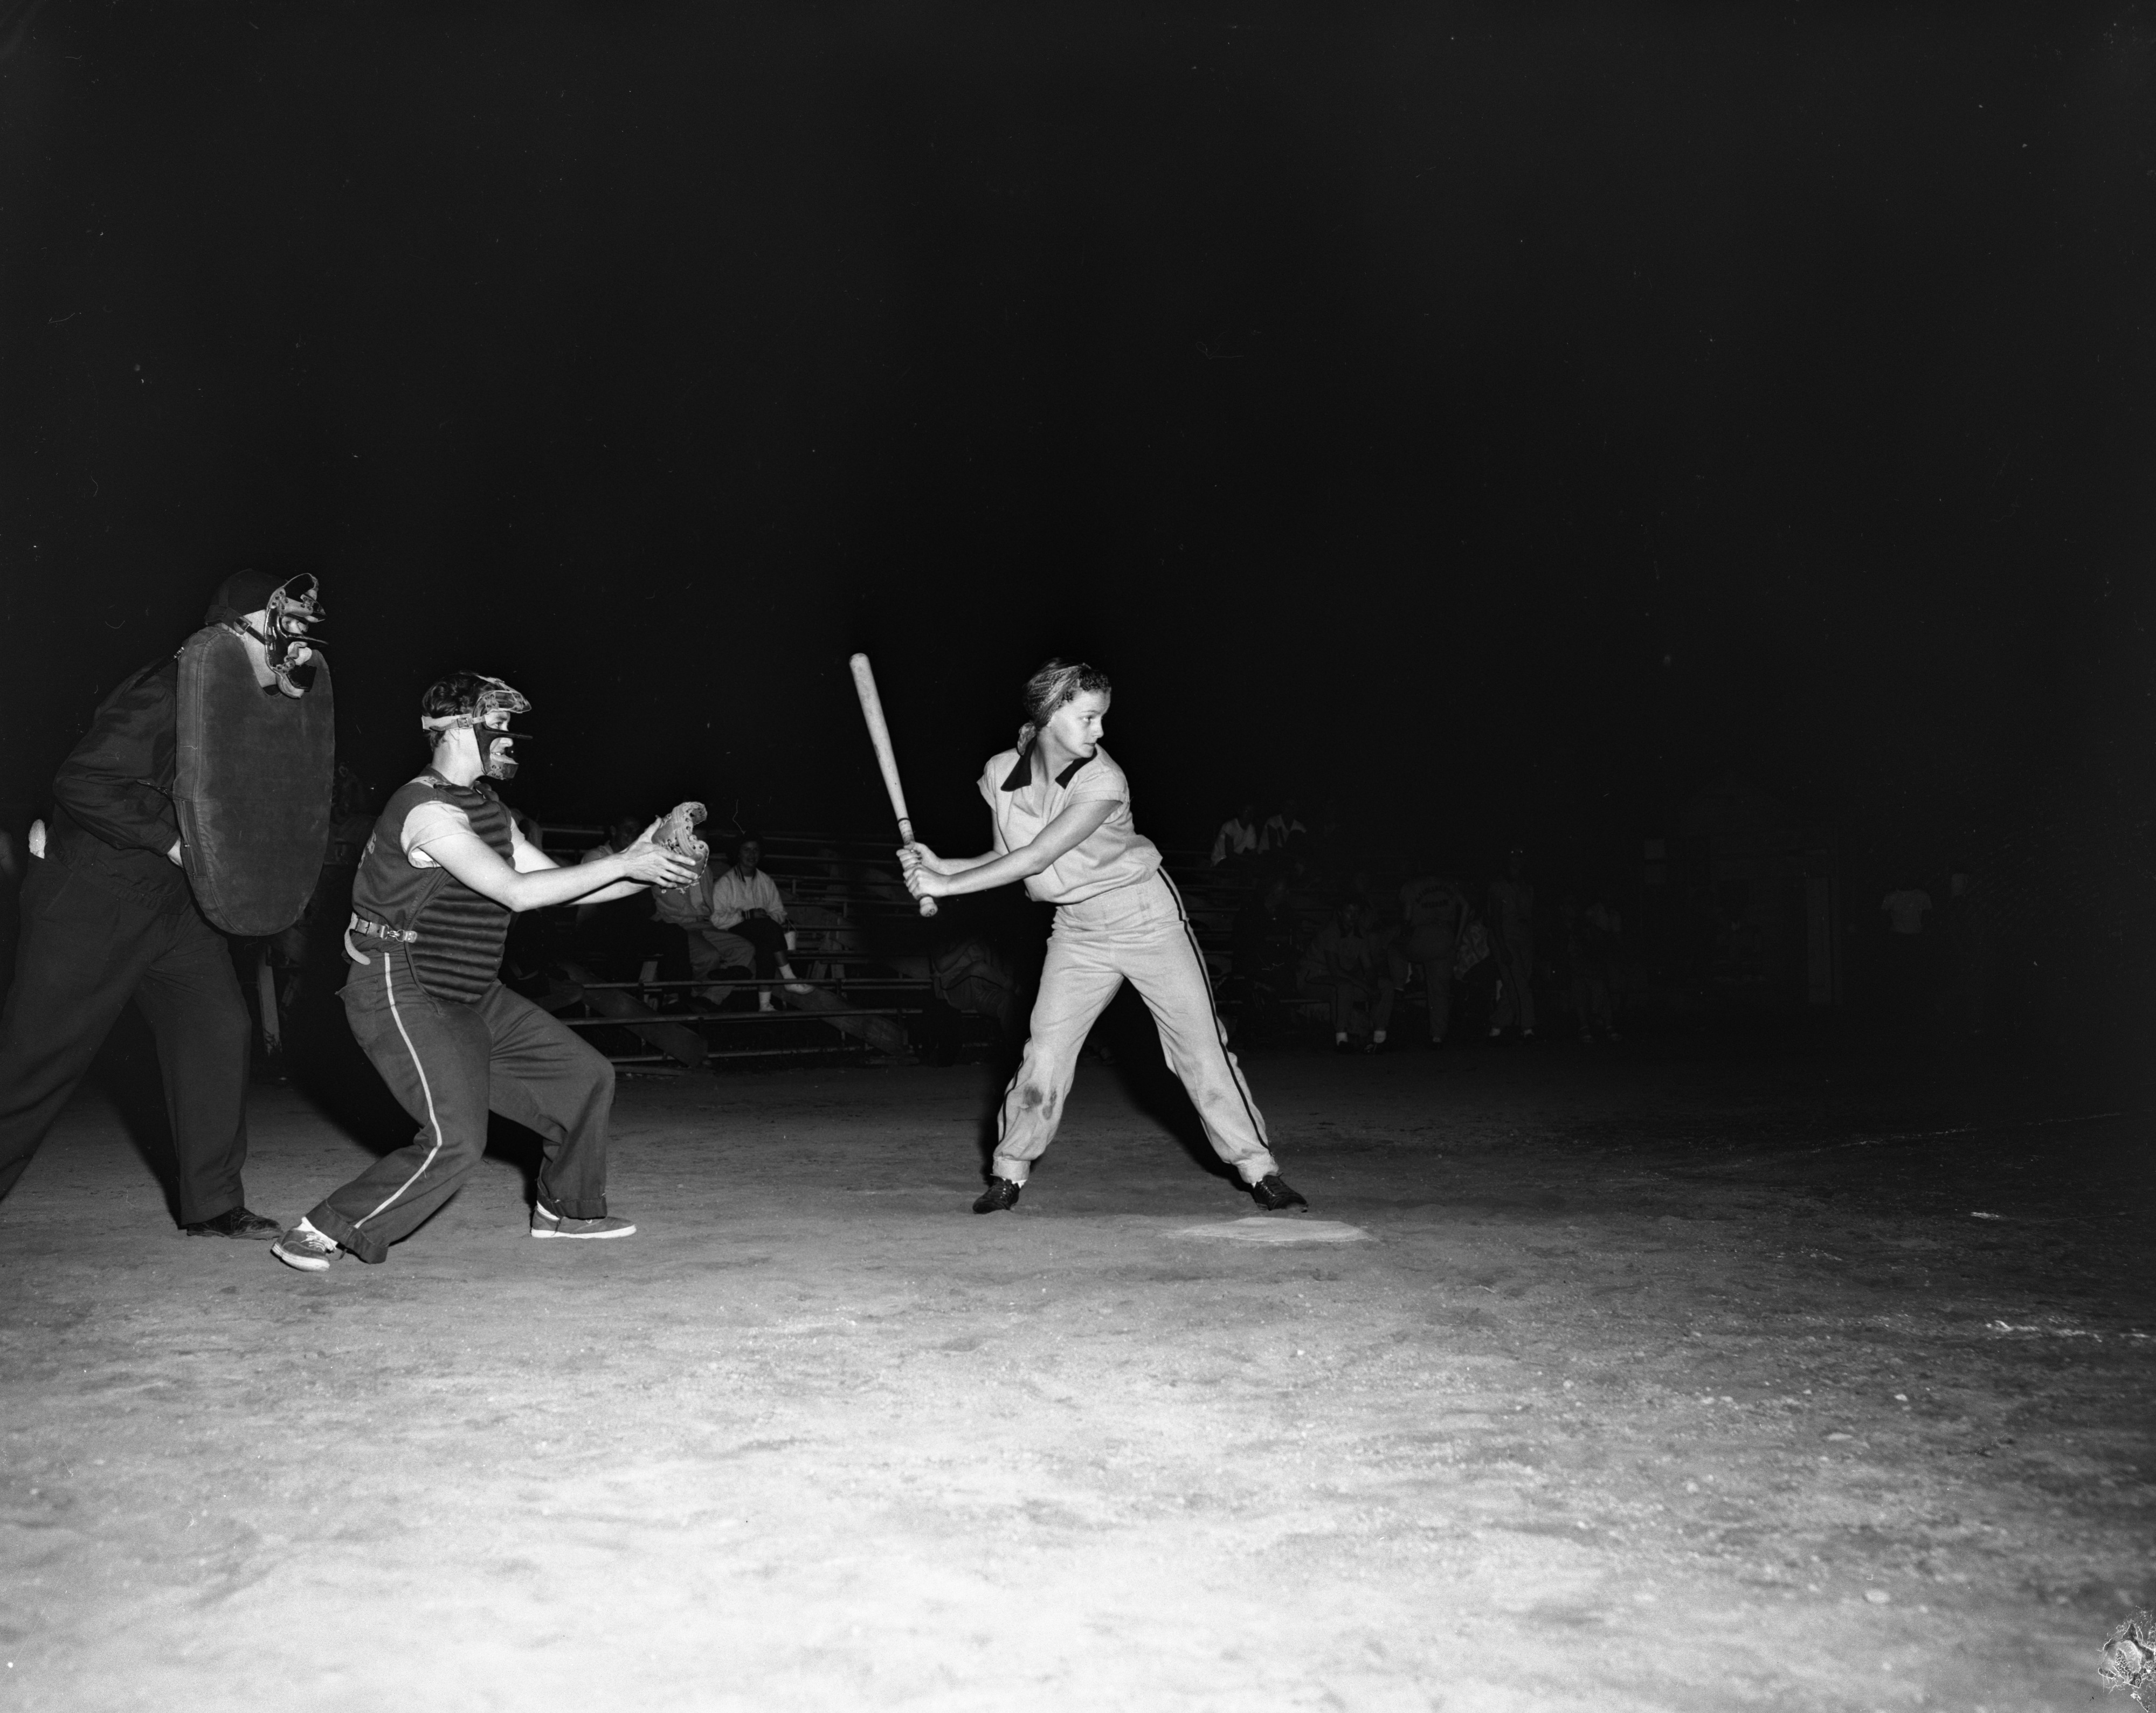 Dorleen McGuire of the Garden City players is up to bat, Women's Inter-City Softball League, Wines Field, July 1956 image